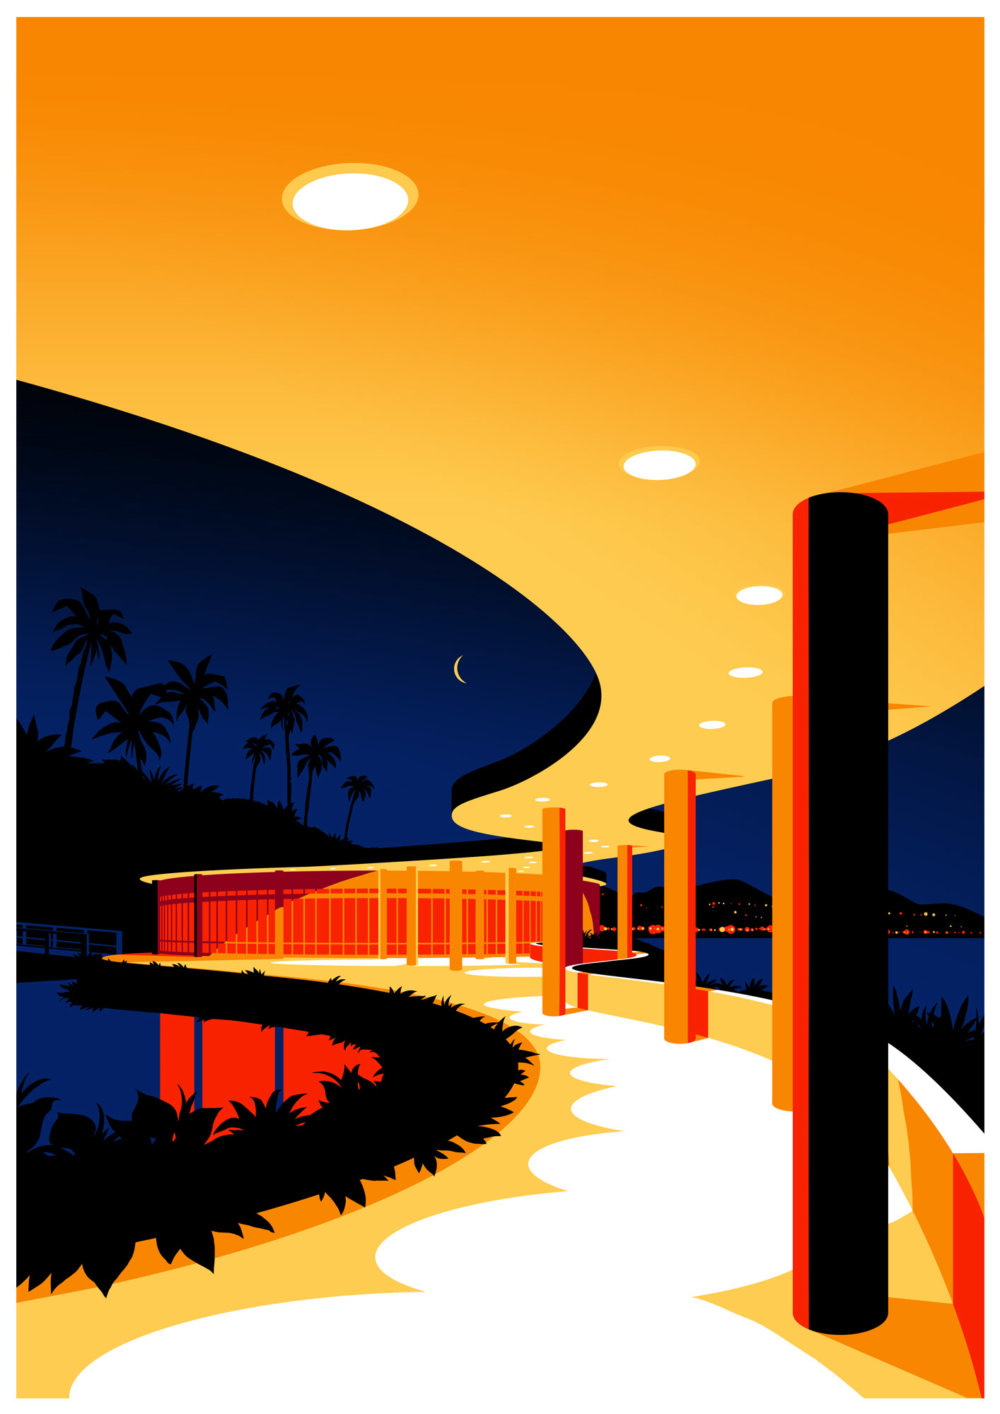 Utopia Architectural Illustration Series Featuring Oscar Niemeyers Design Lines By Levente Szabo 8